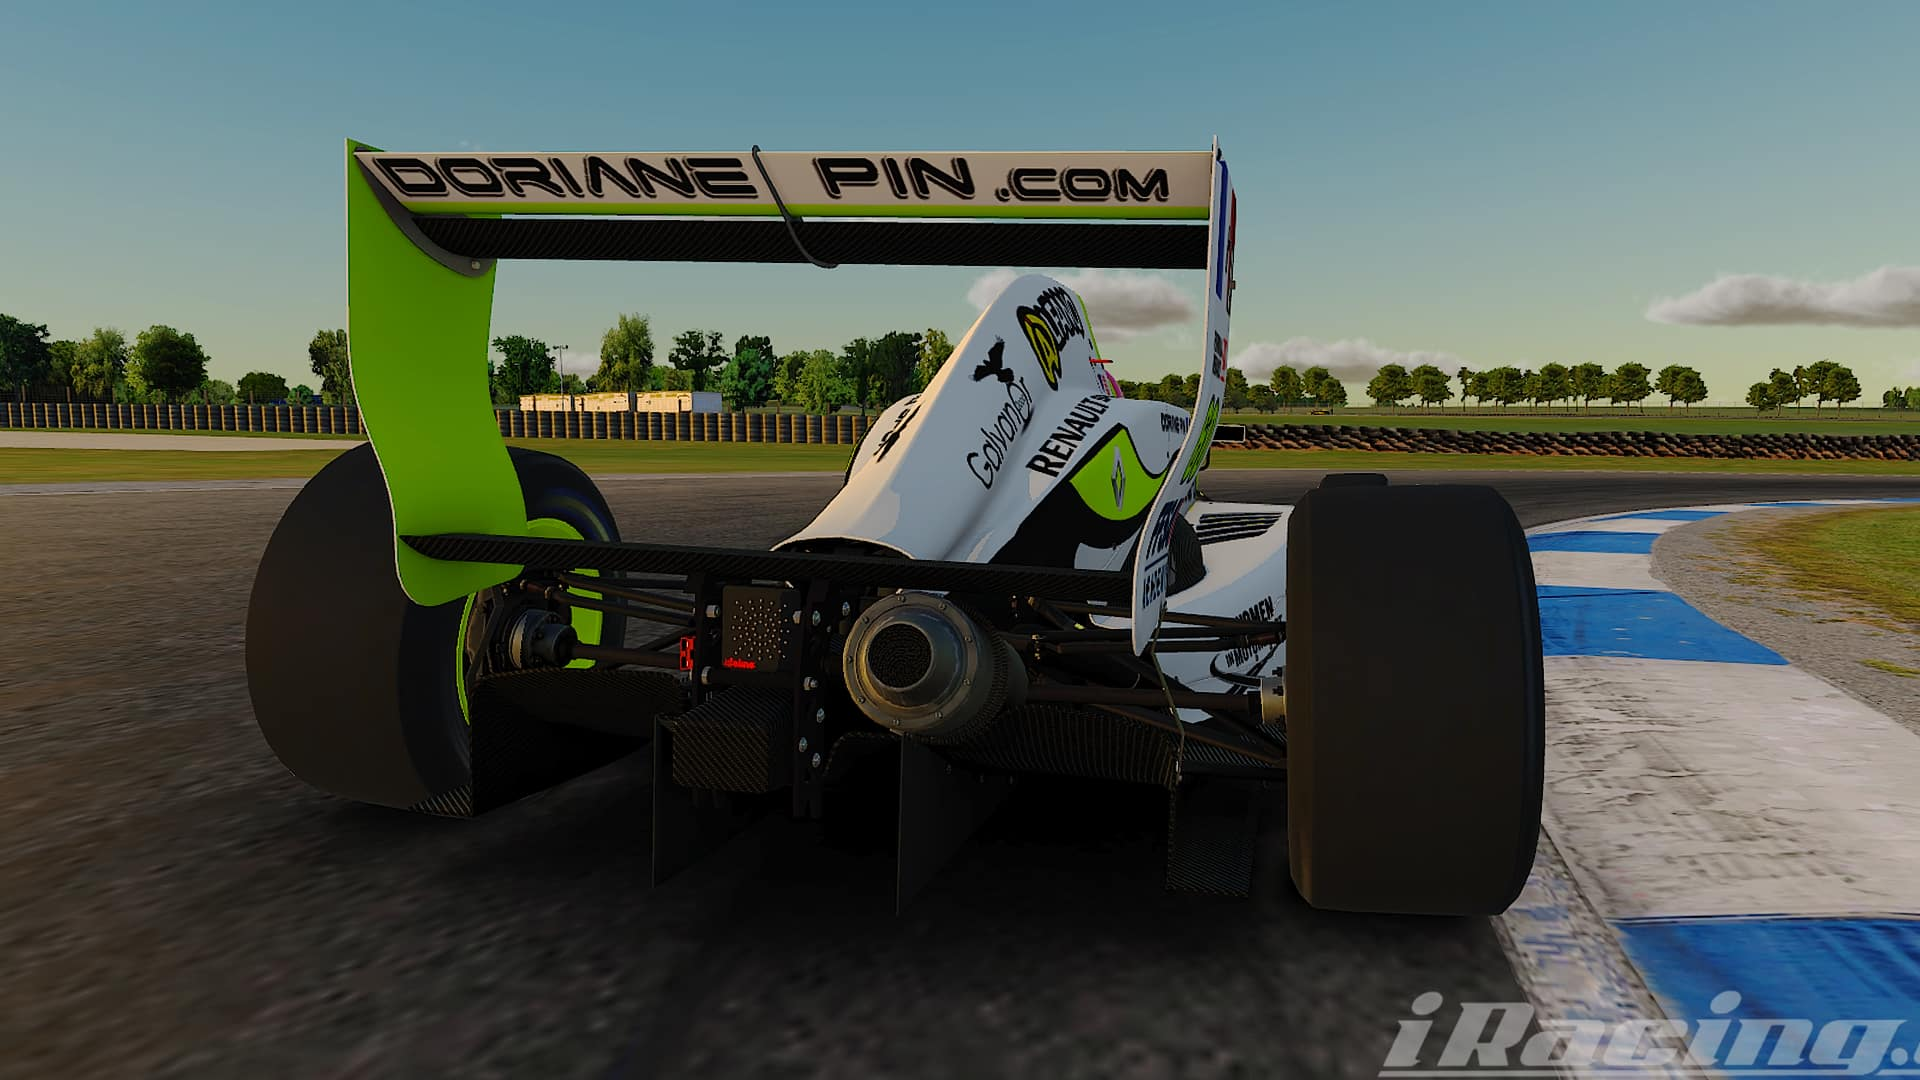 Doriane Pin drives her Formule Renault 2.0 on iRacing, overtaken driver's view !